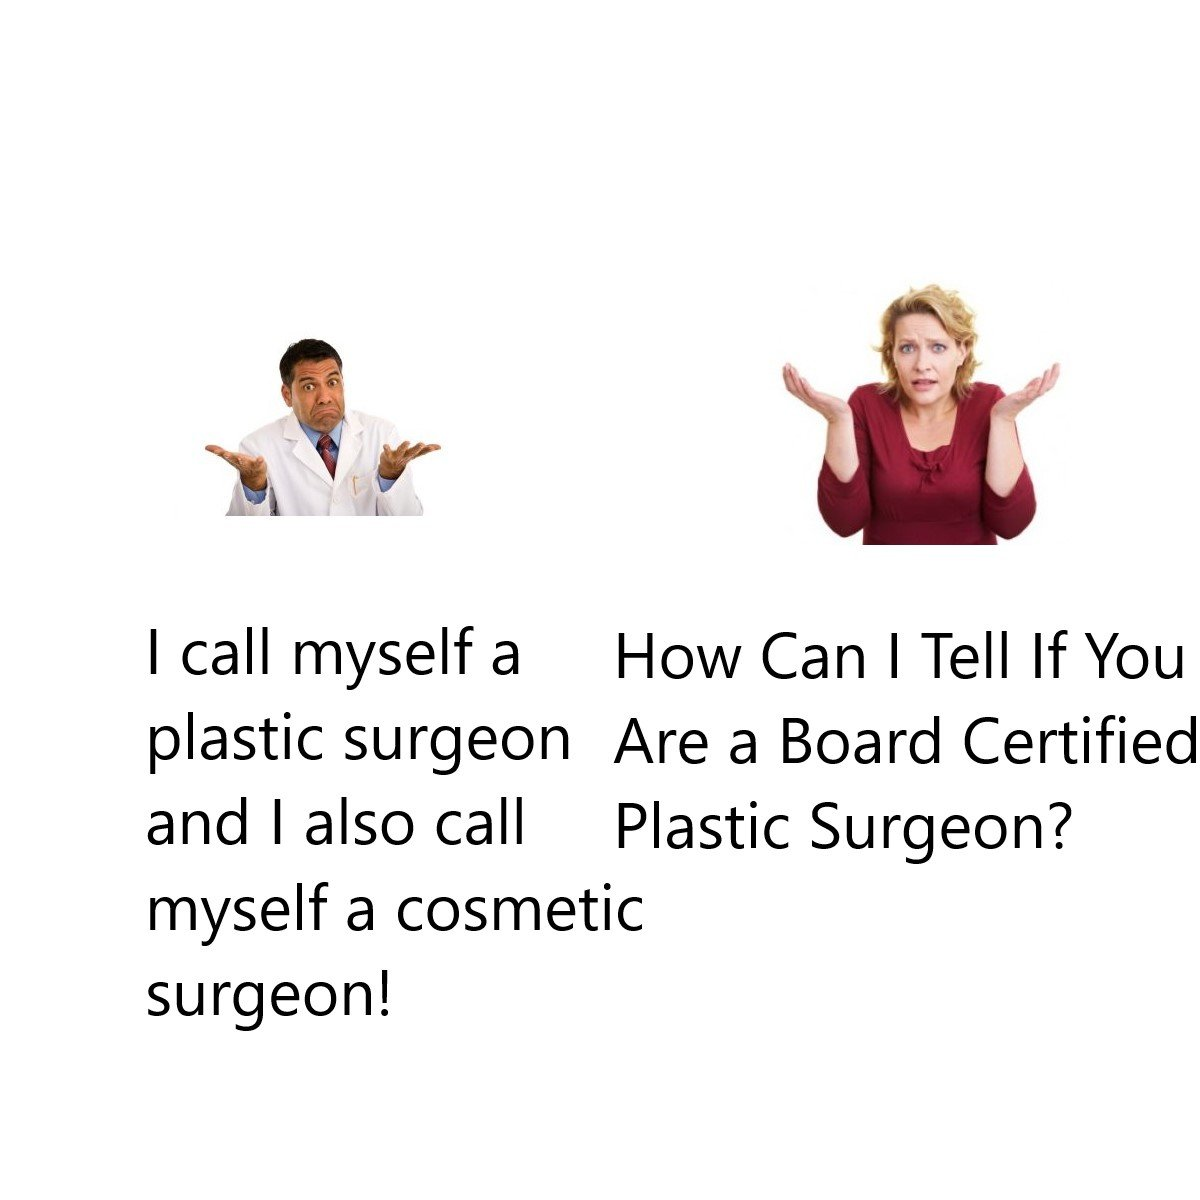 Board Certified Plastic Surgeon